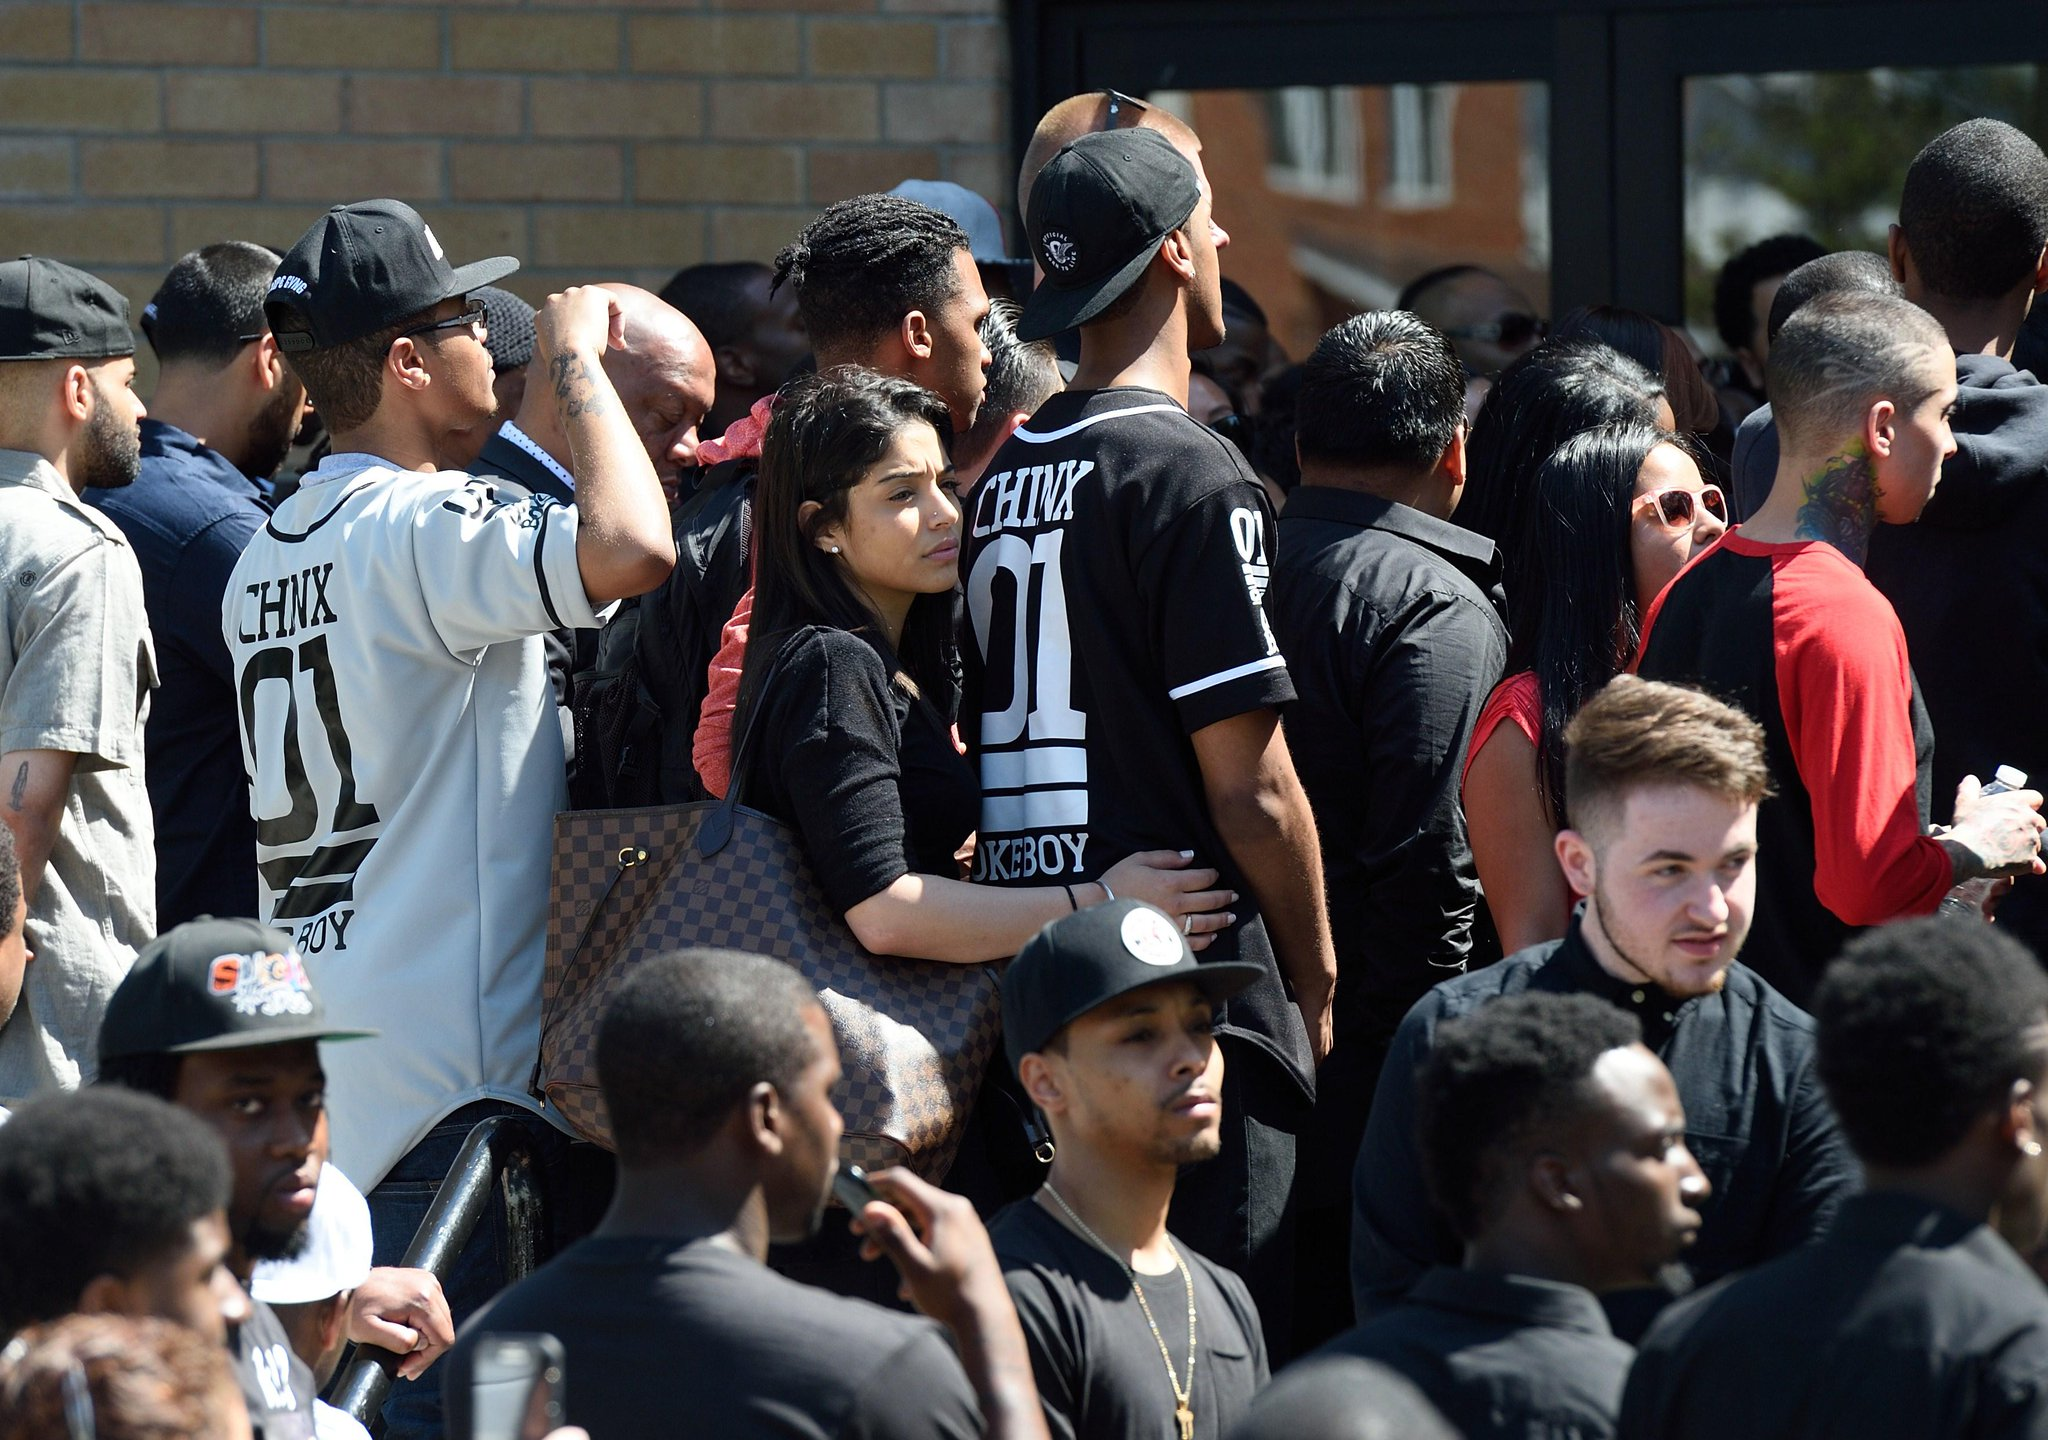 RT @GlobalGrind: Family, friends, and fans of Chinx gathered to say their goodbyes at his funeral in Queens http://t.co/BJbBCvu49D http://t…